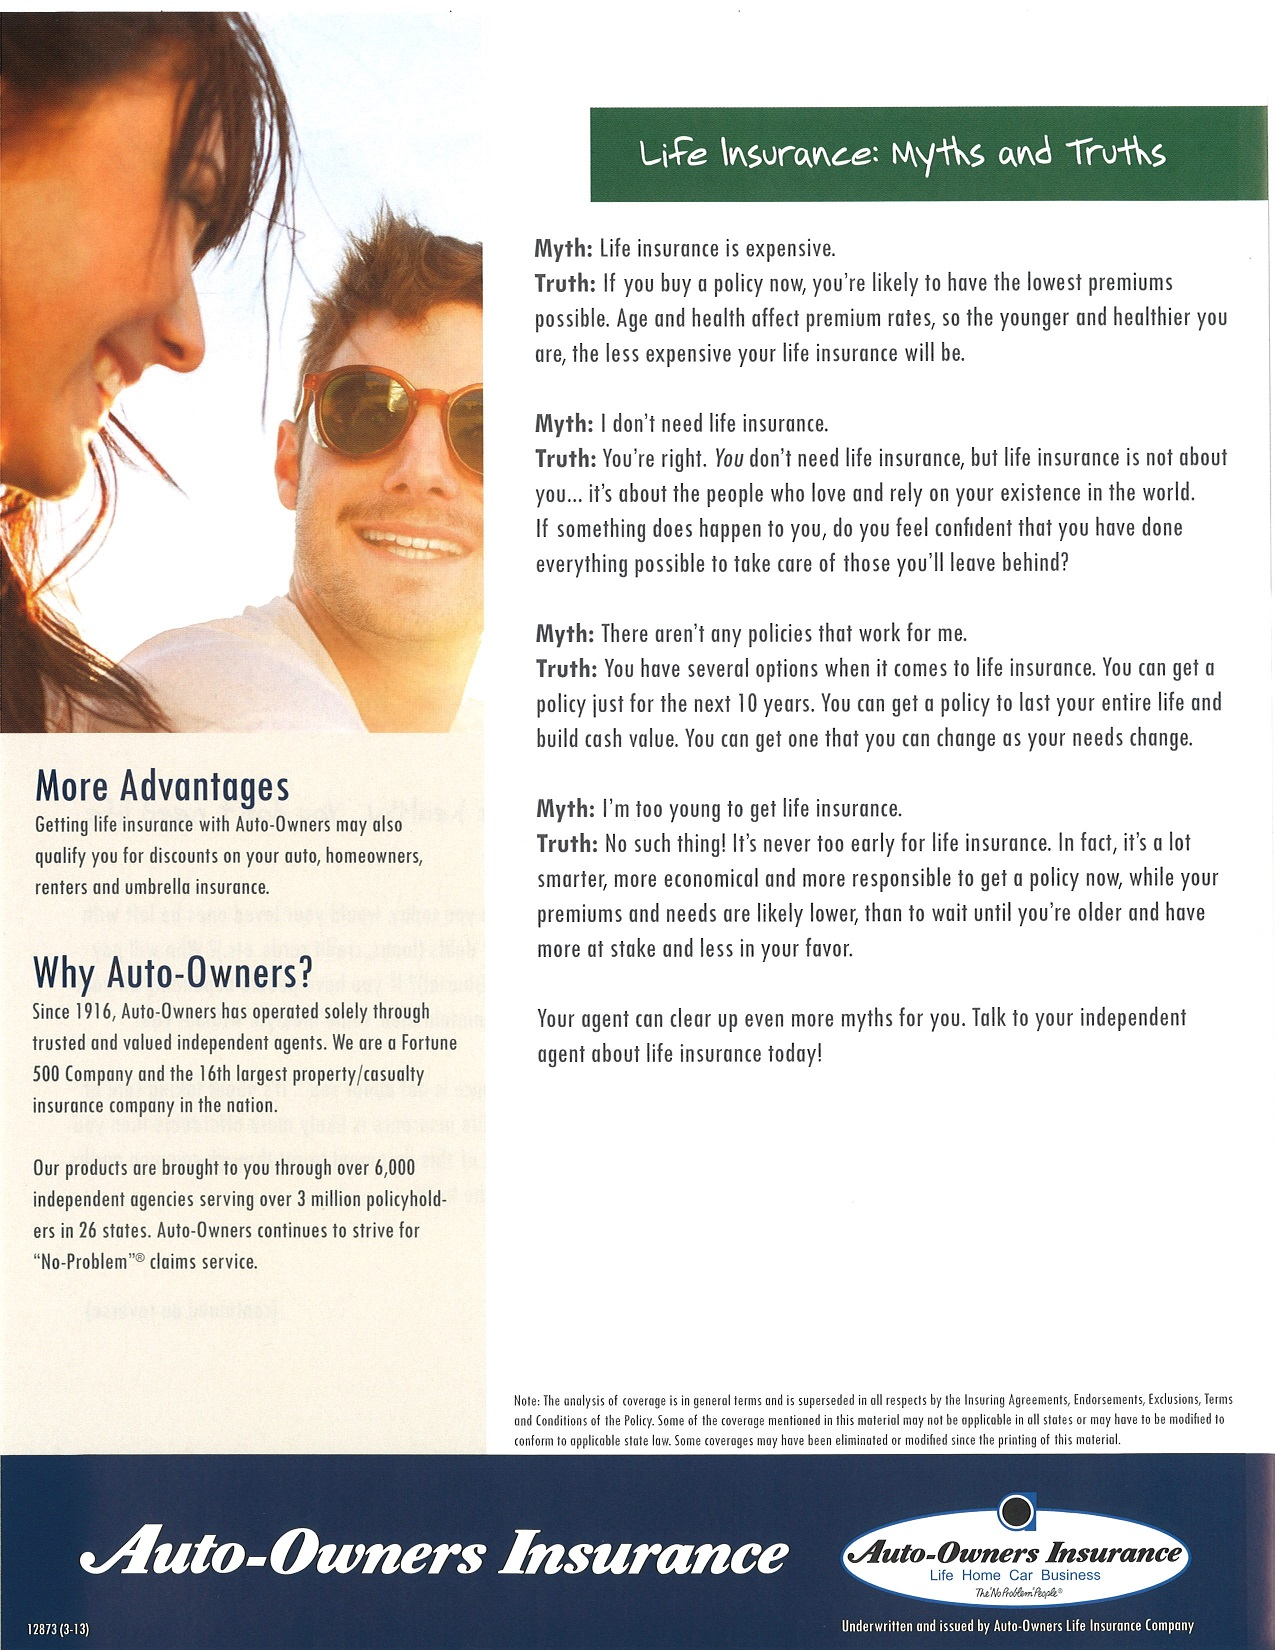 Life Insurance: Myths and Truths MUST READ!!